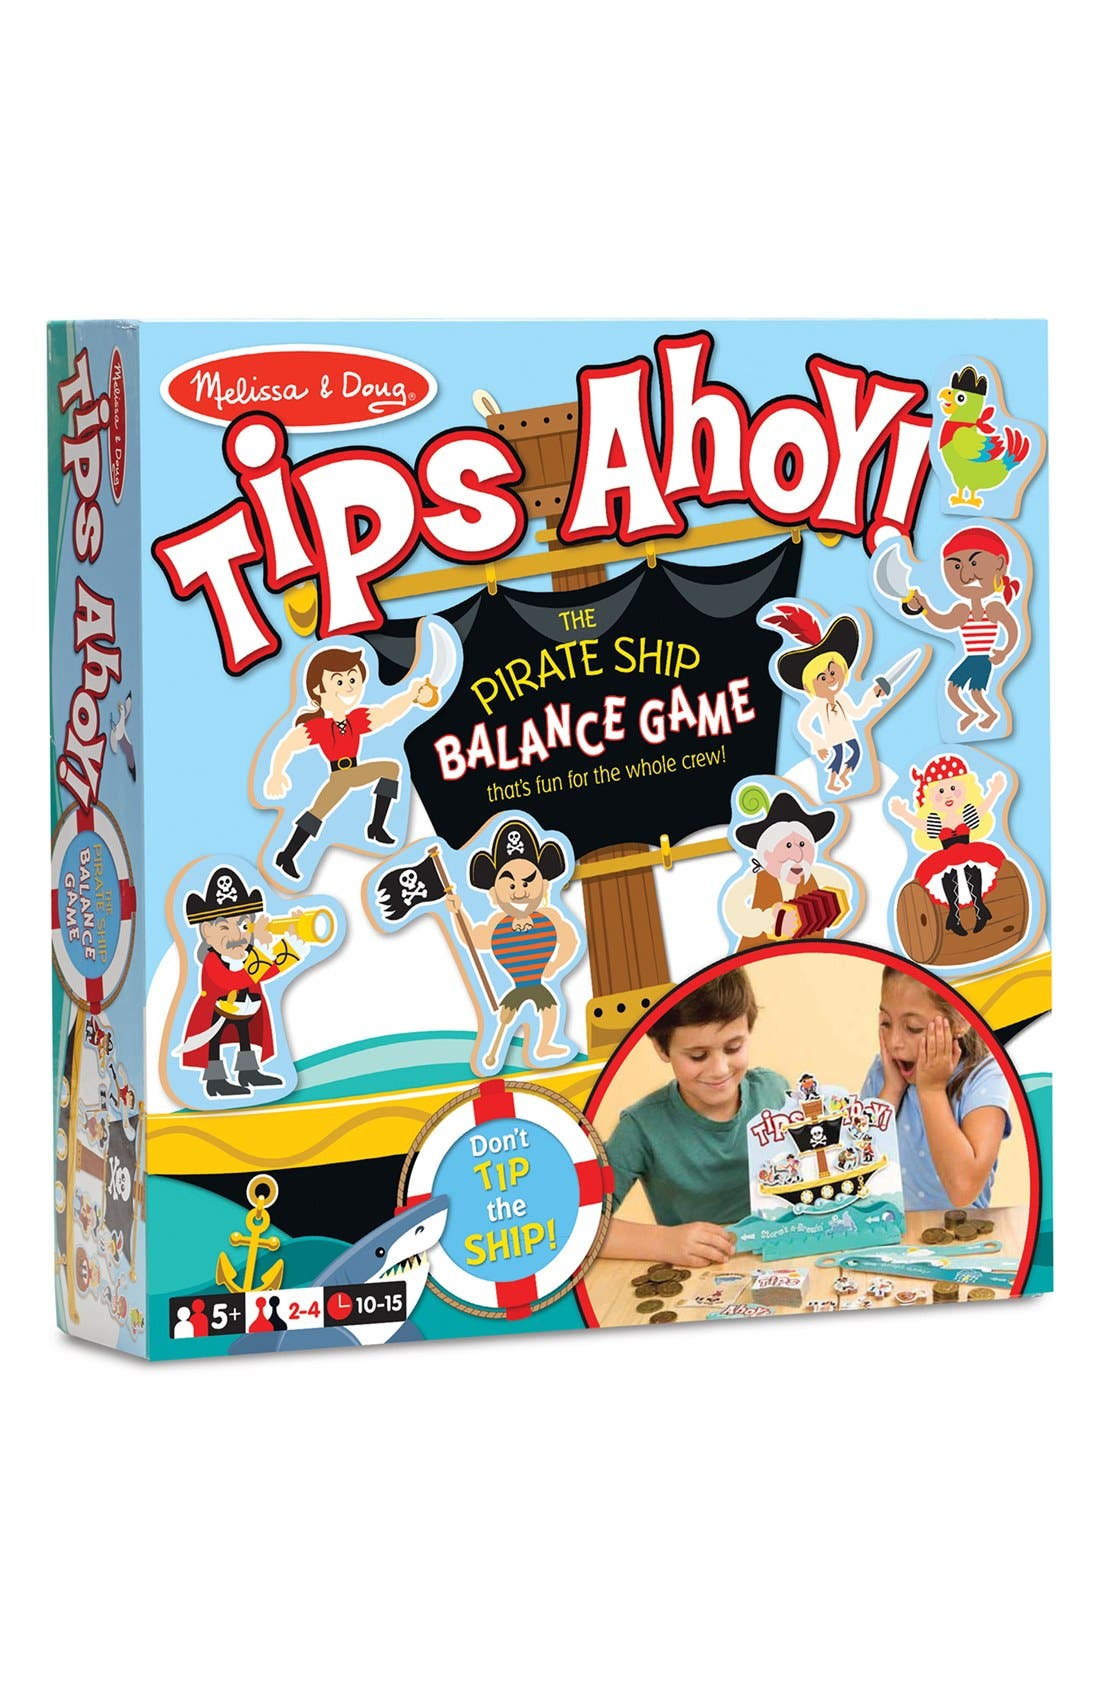 Alternate Image 1 Selected - Melissa & Doug 'Tips Ahoy' Game